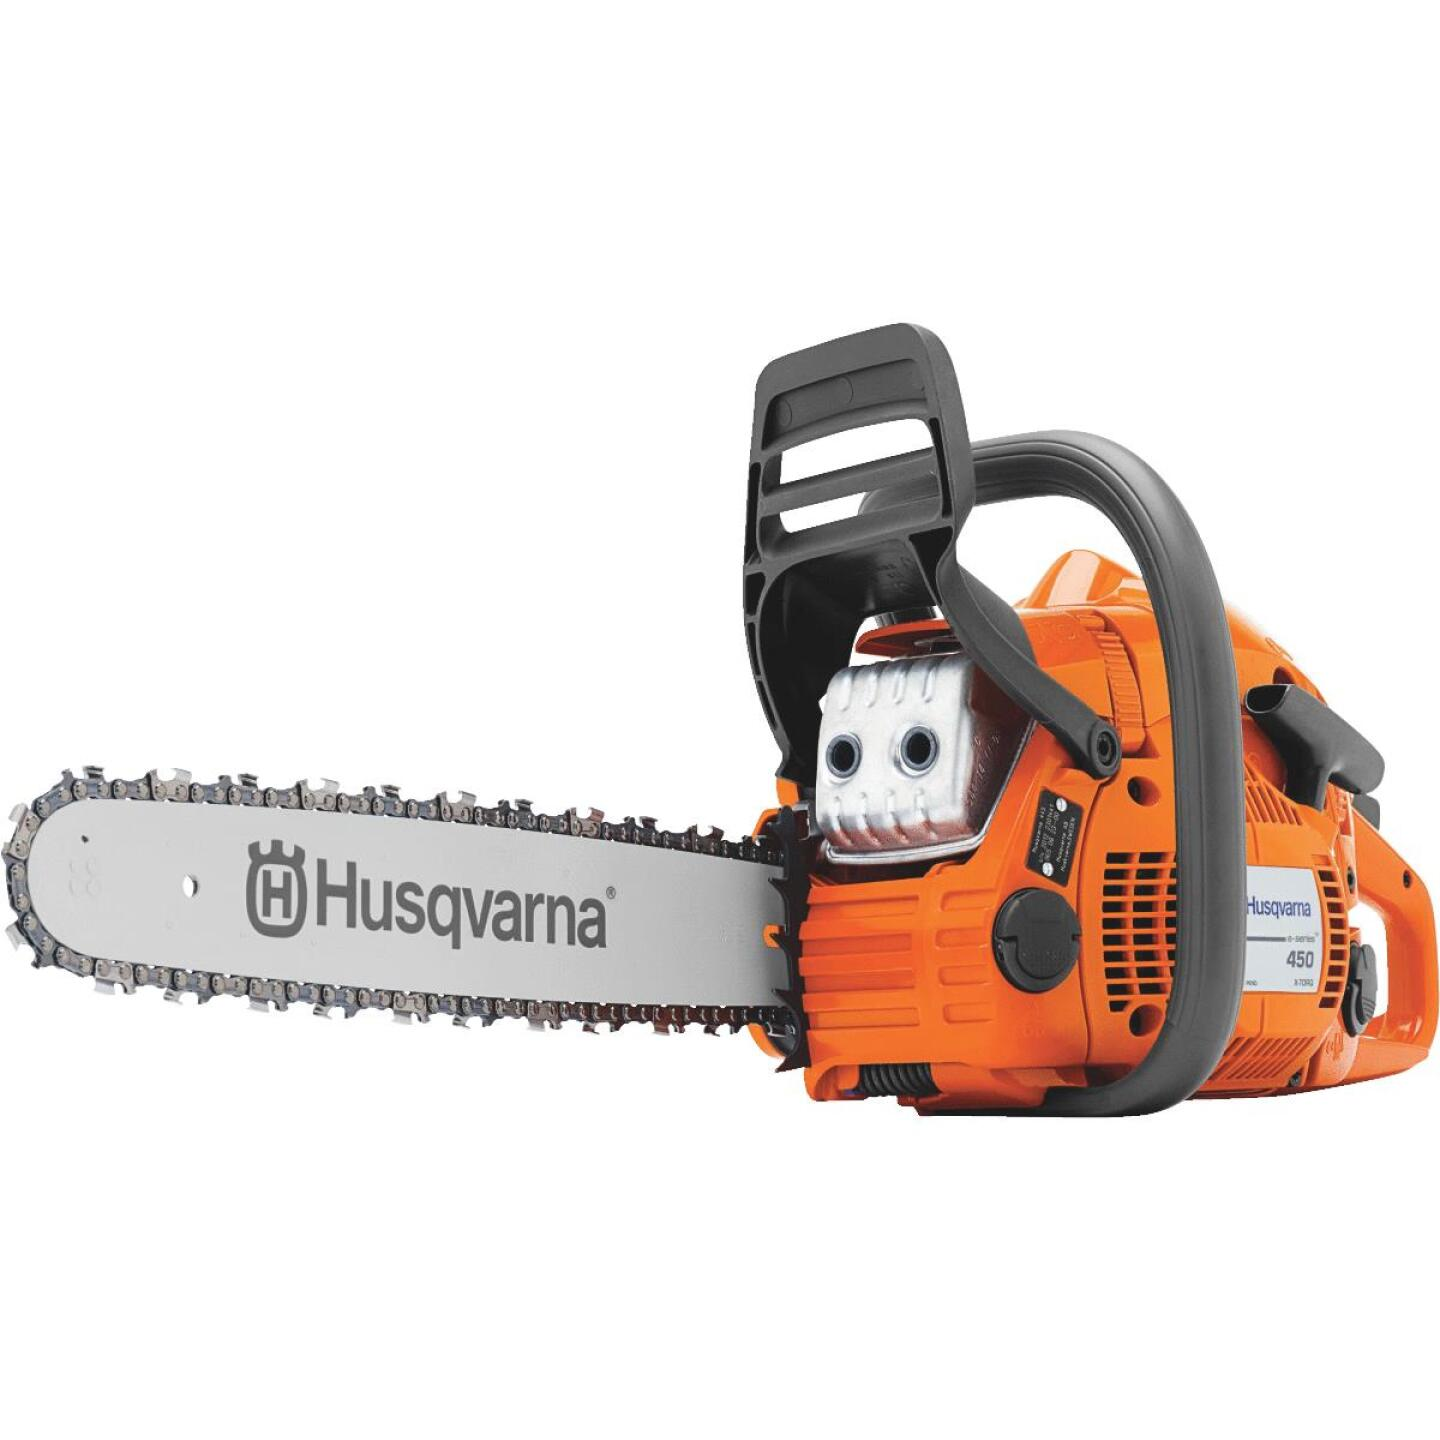 Husqvarna 450 20 In. 50.2 CC Gas Chainsaw Image 1